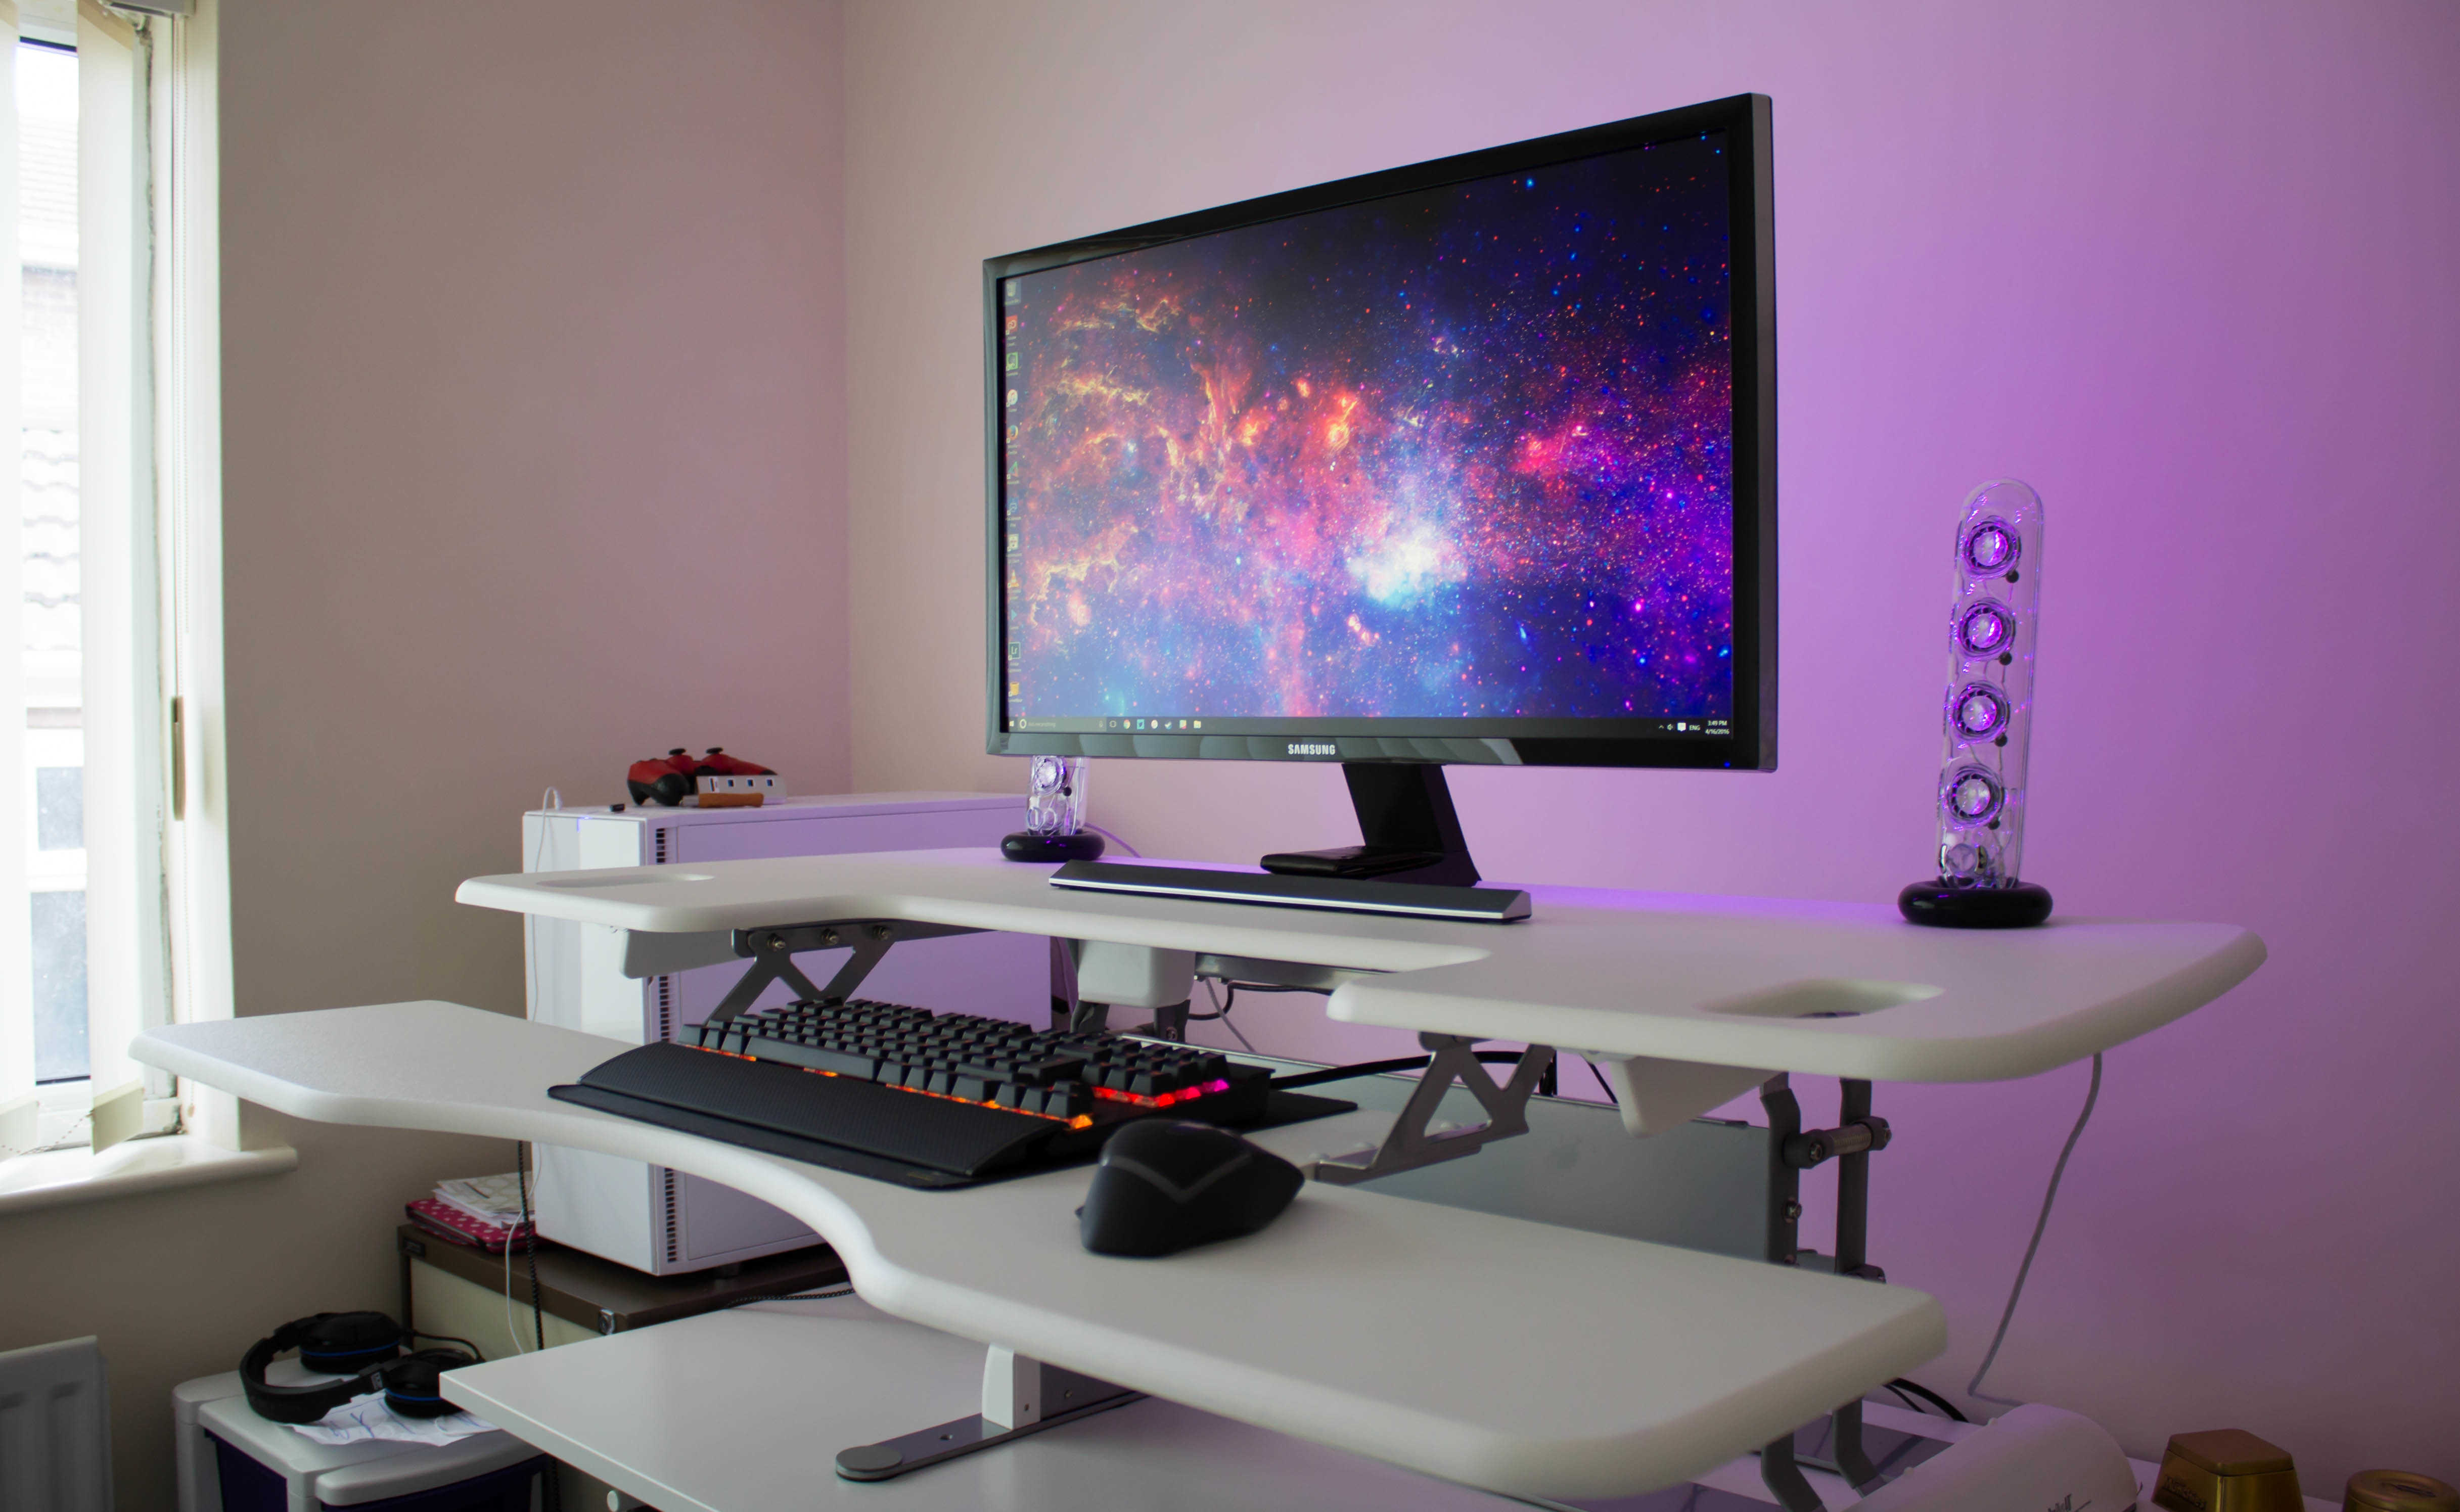 Varidesk review standing desks epic reviews - Veridesk Comes Pre Assembled So You Just Have To Take It Out Of The Varidesk